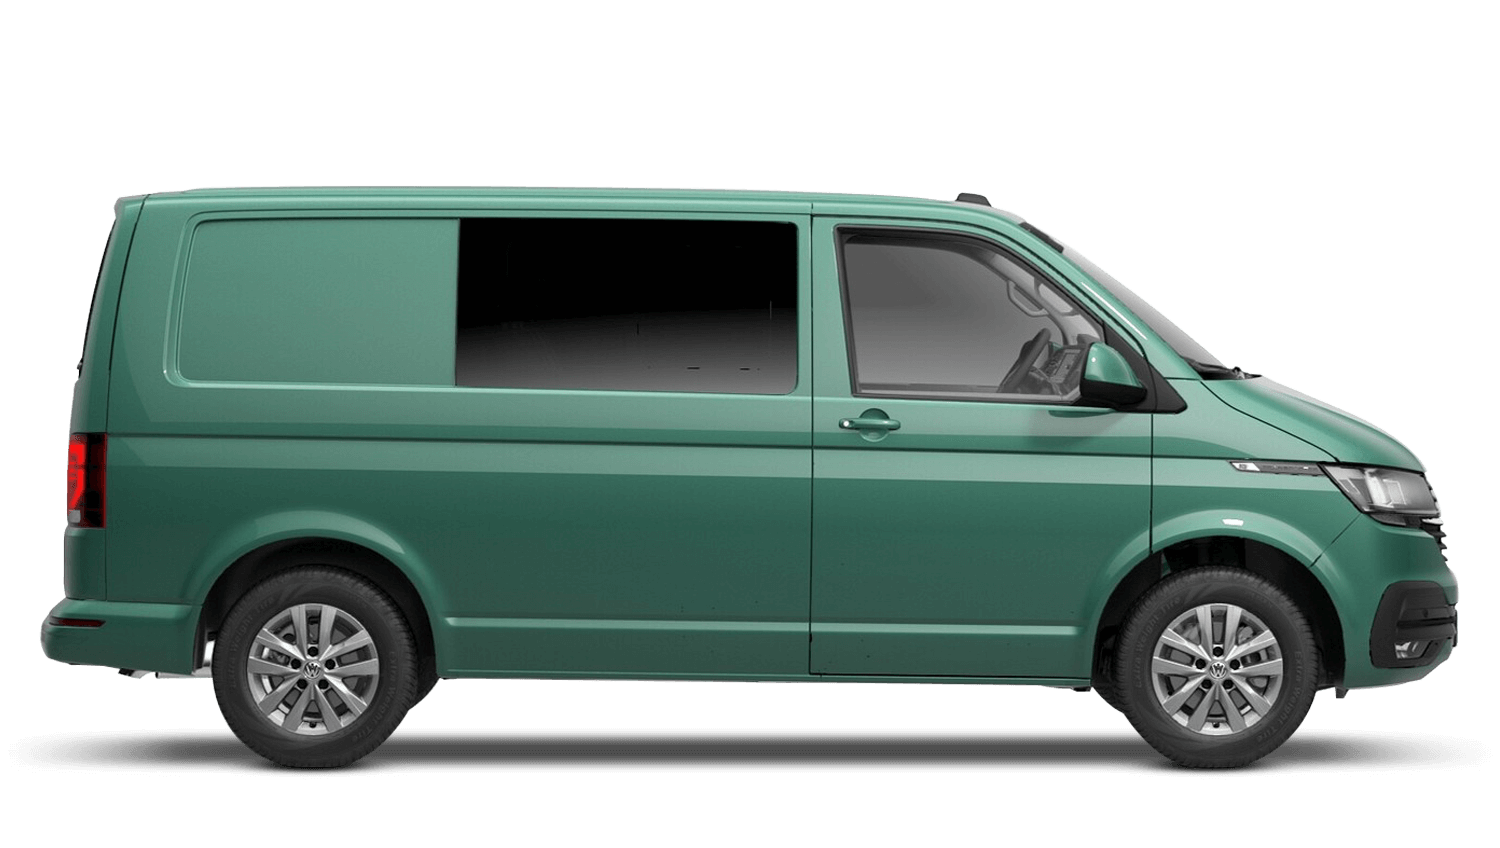 Transporter 6.1 kombi Contract Hire Offer